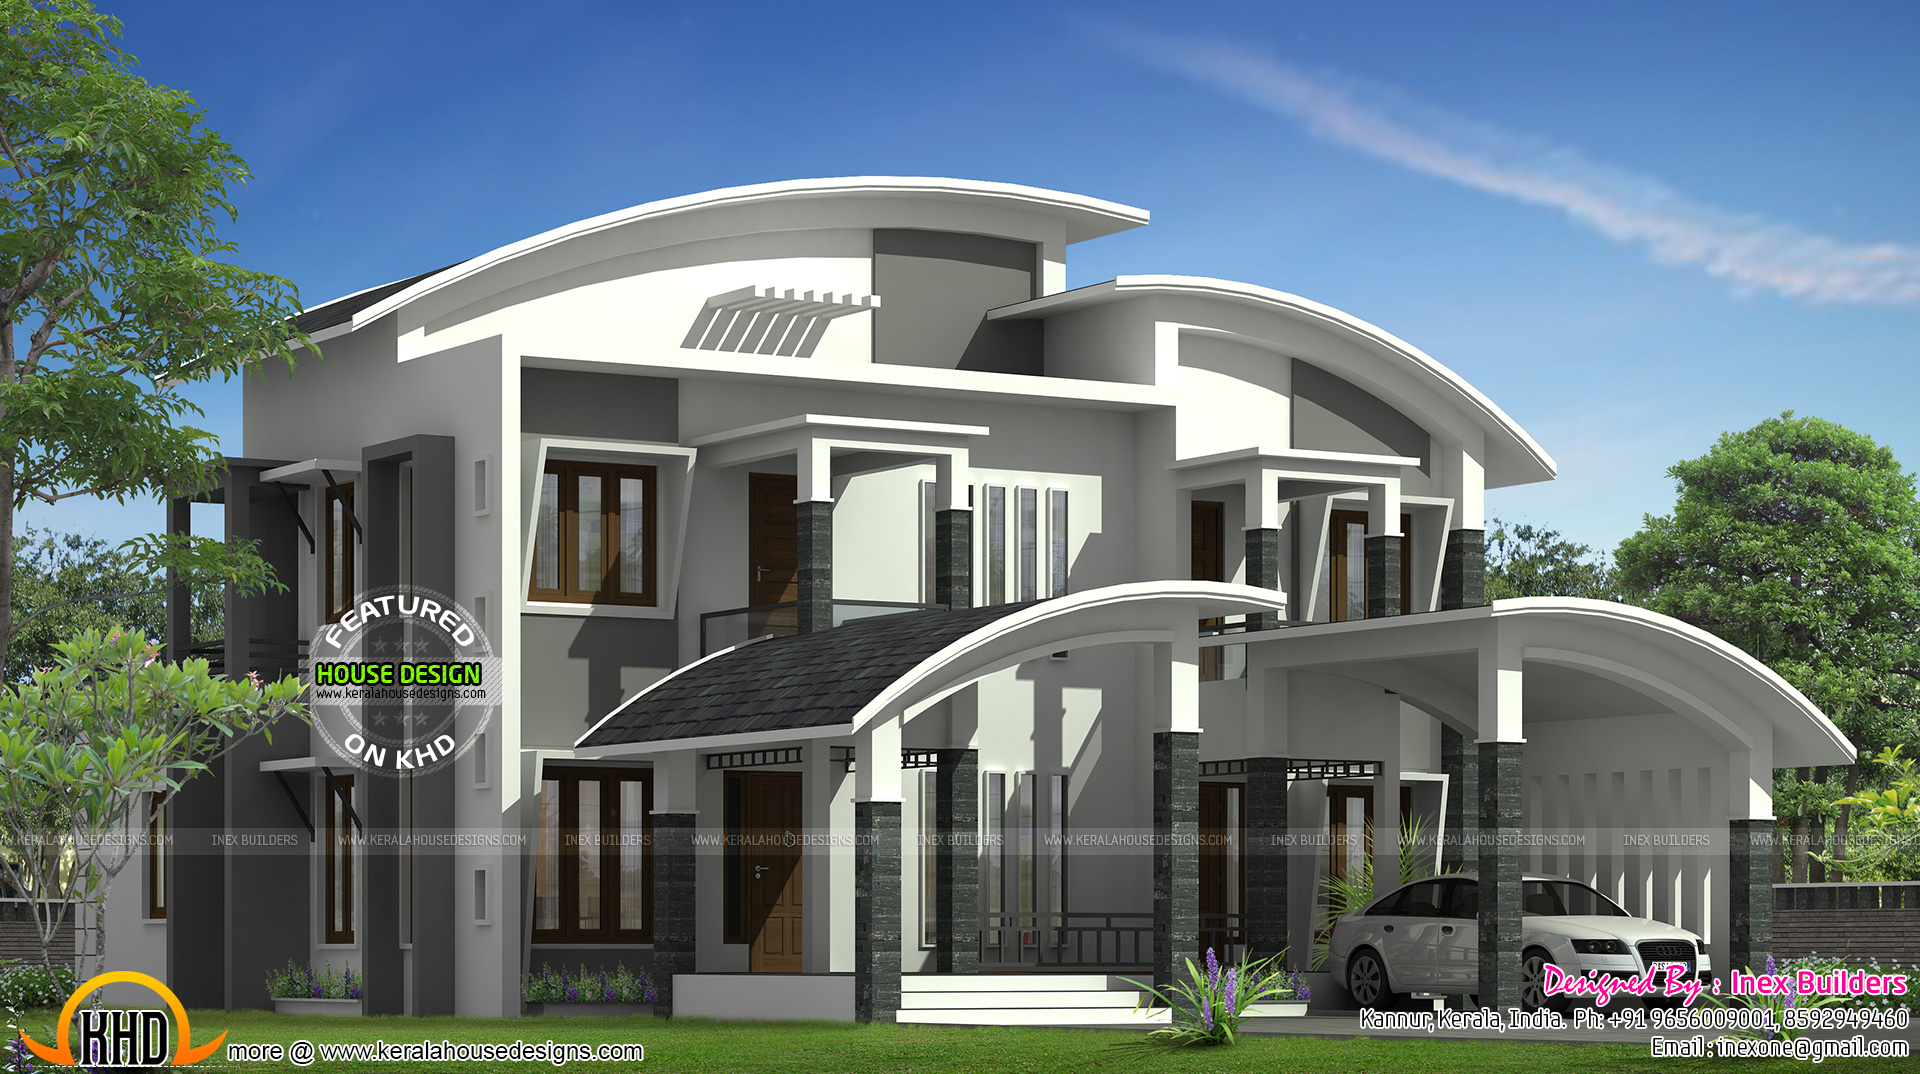 Curved roof house plan kerala home design and floor plans for Curved roof house plans